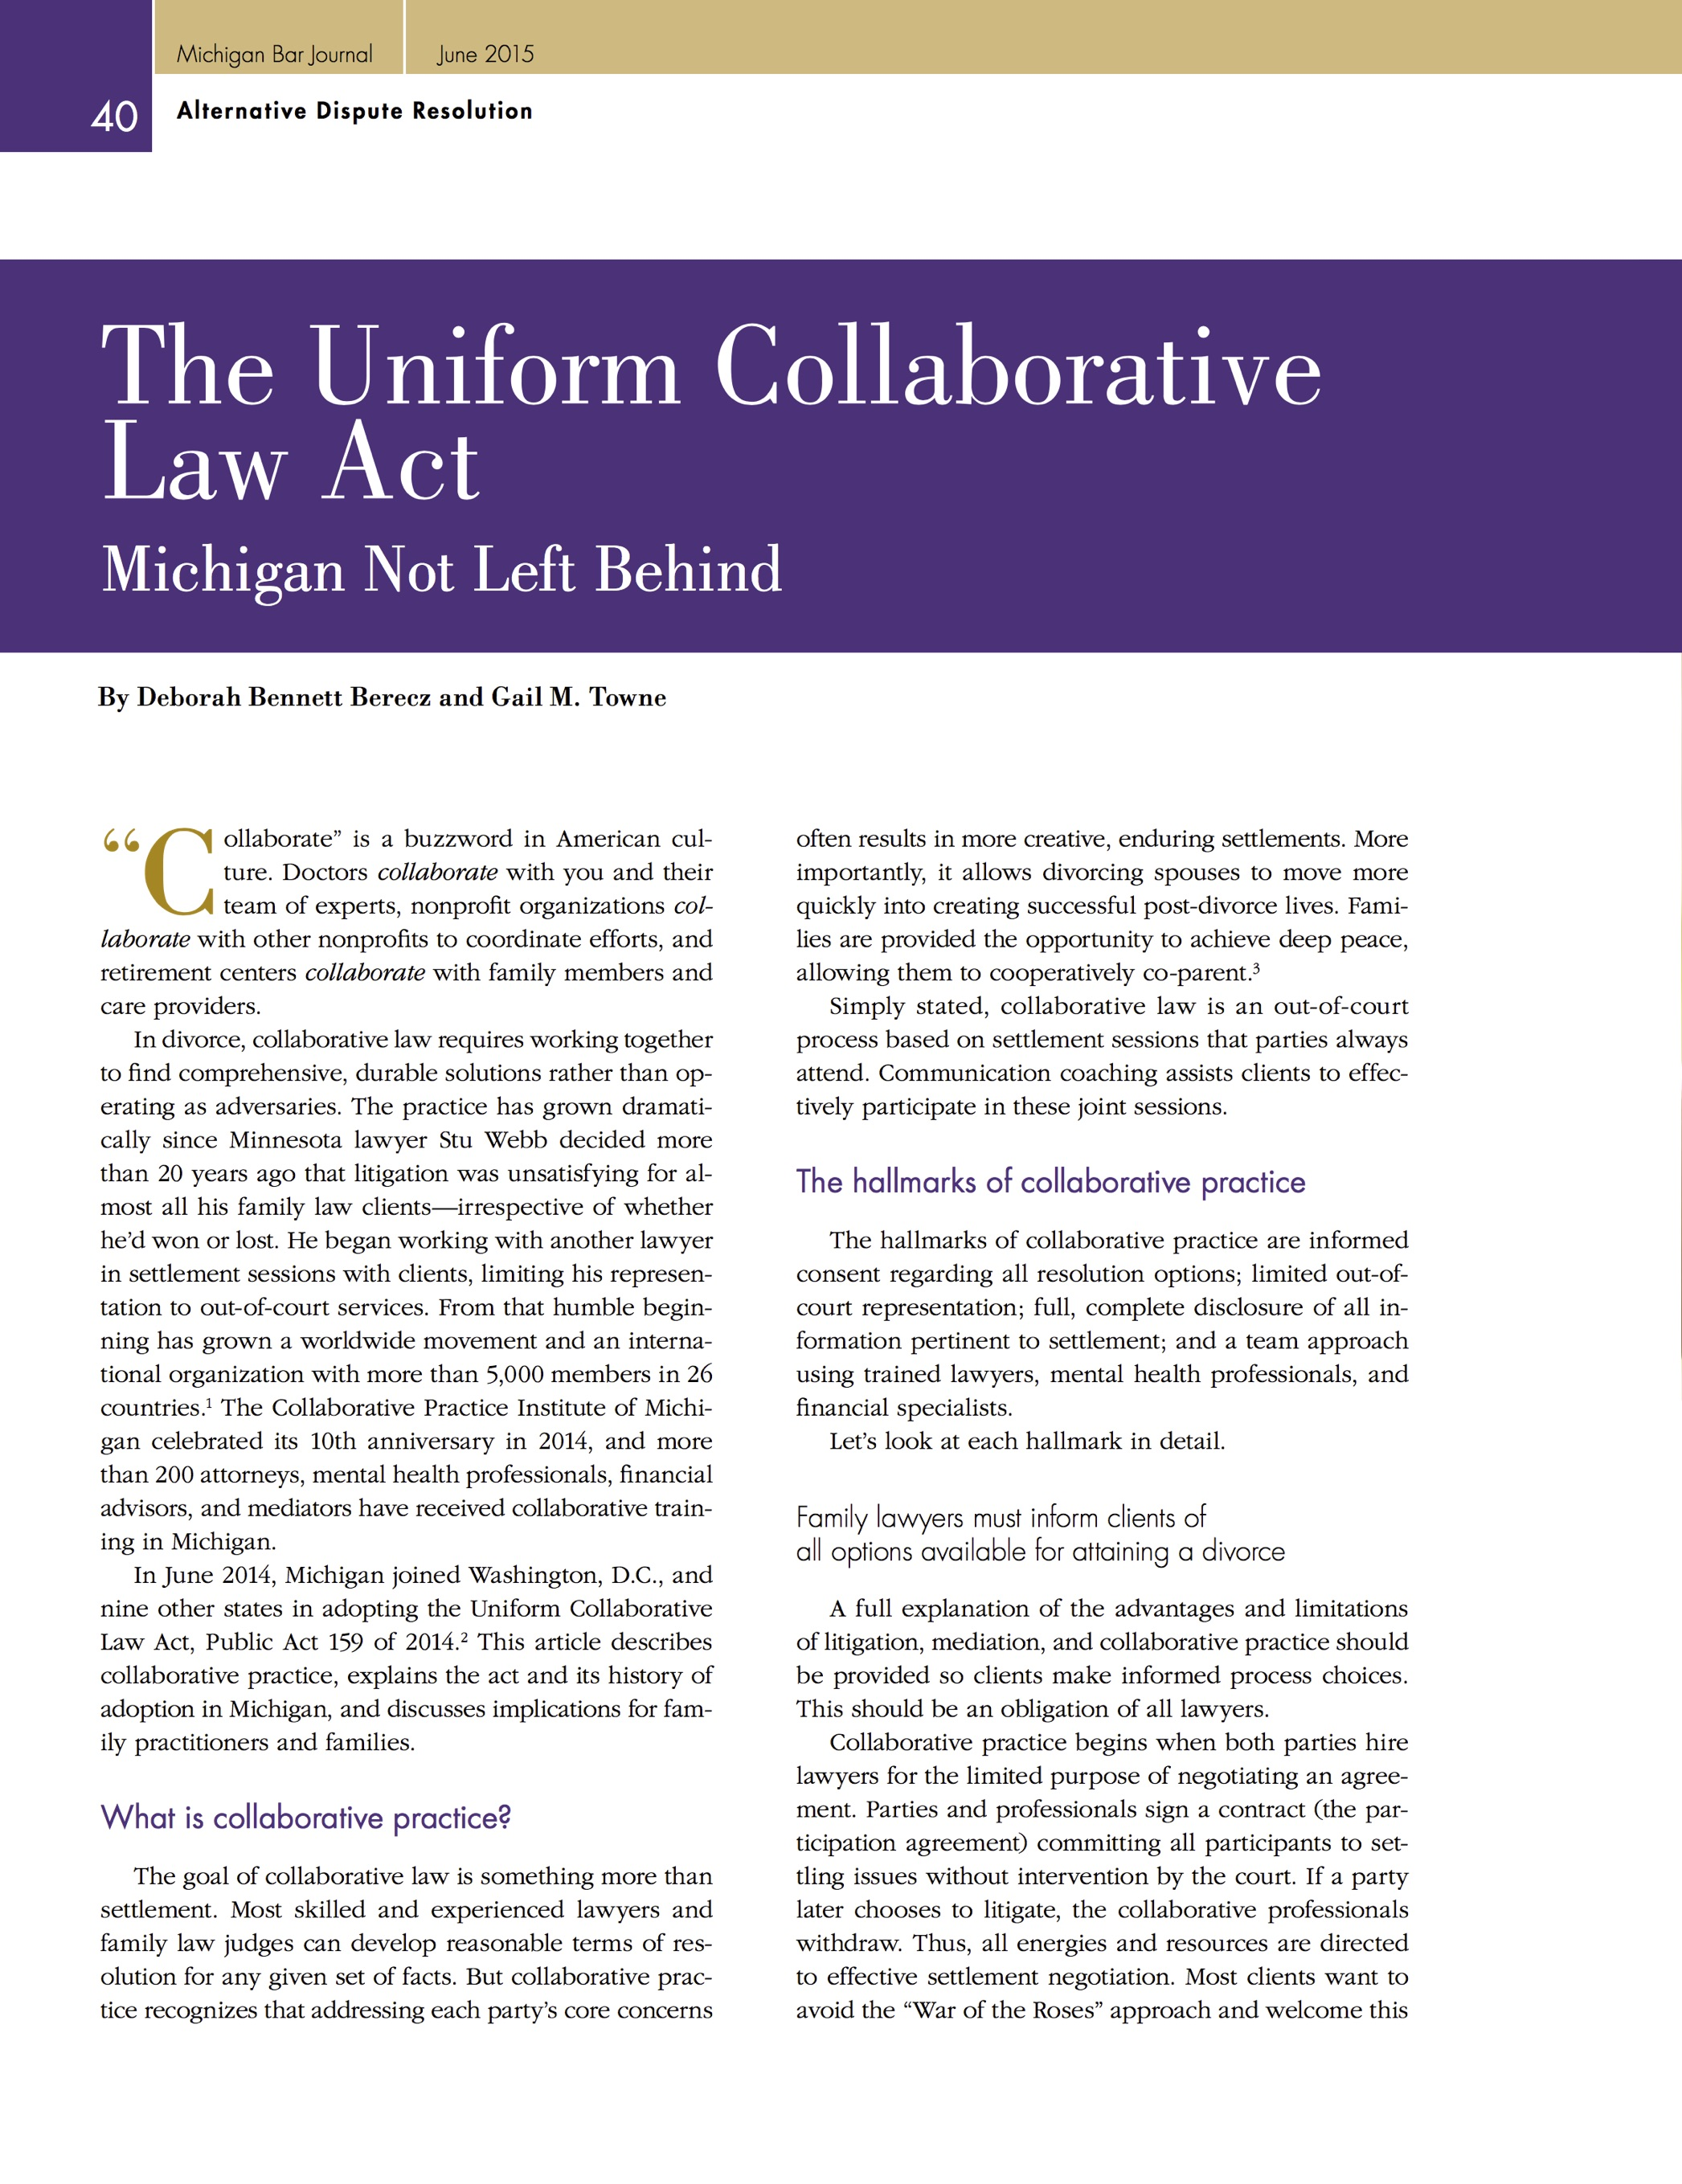 The Uniform Collaborative Law Act